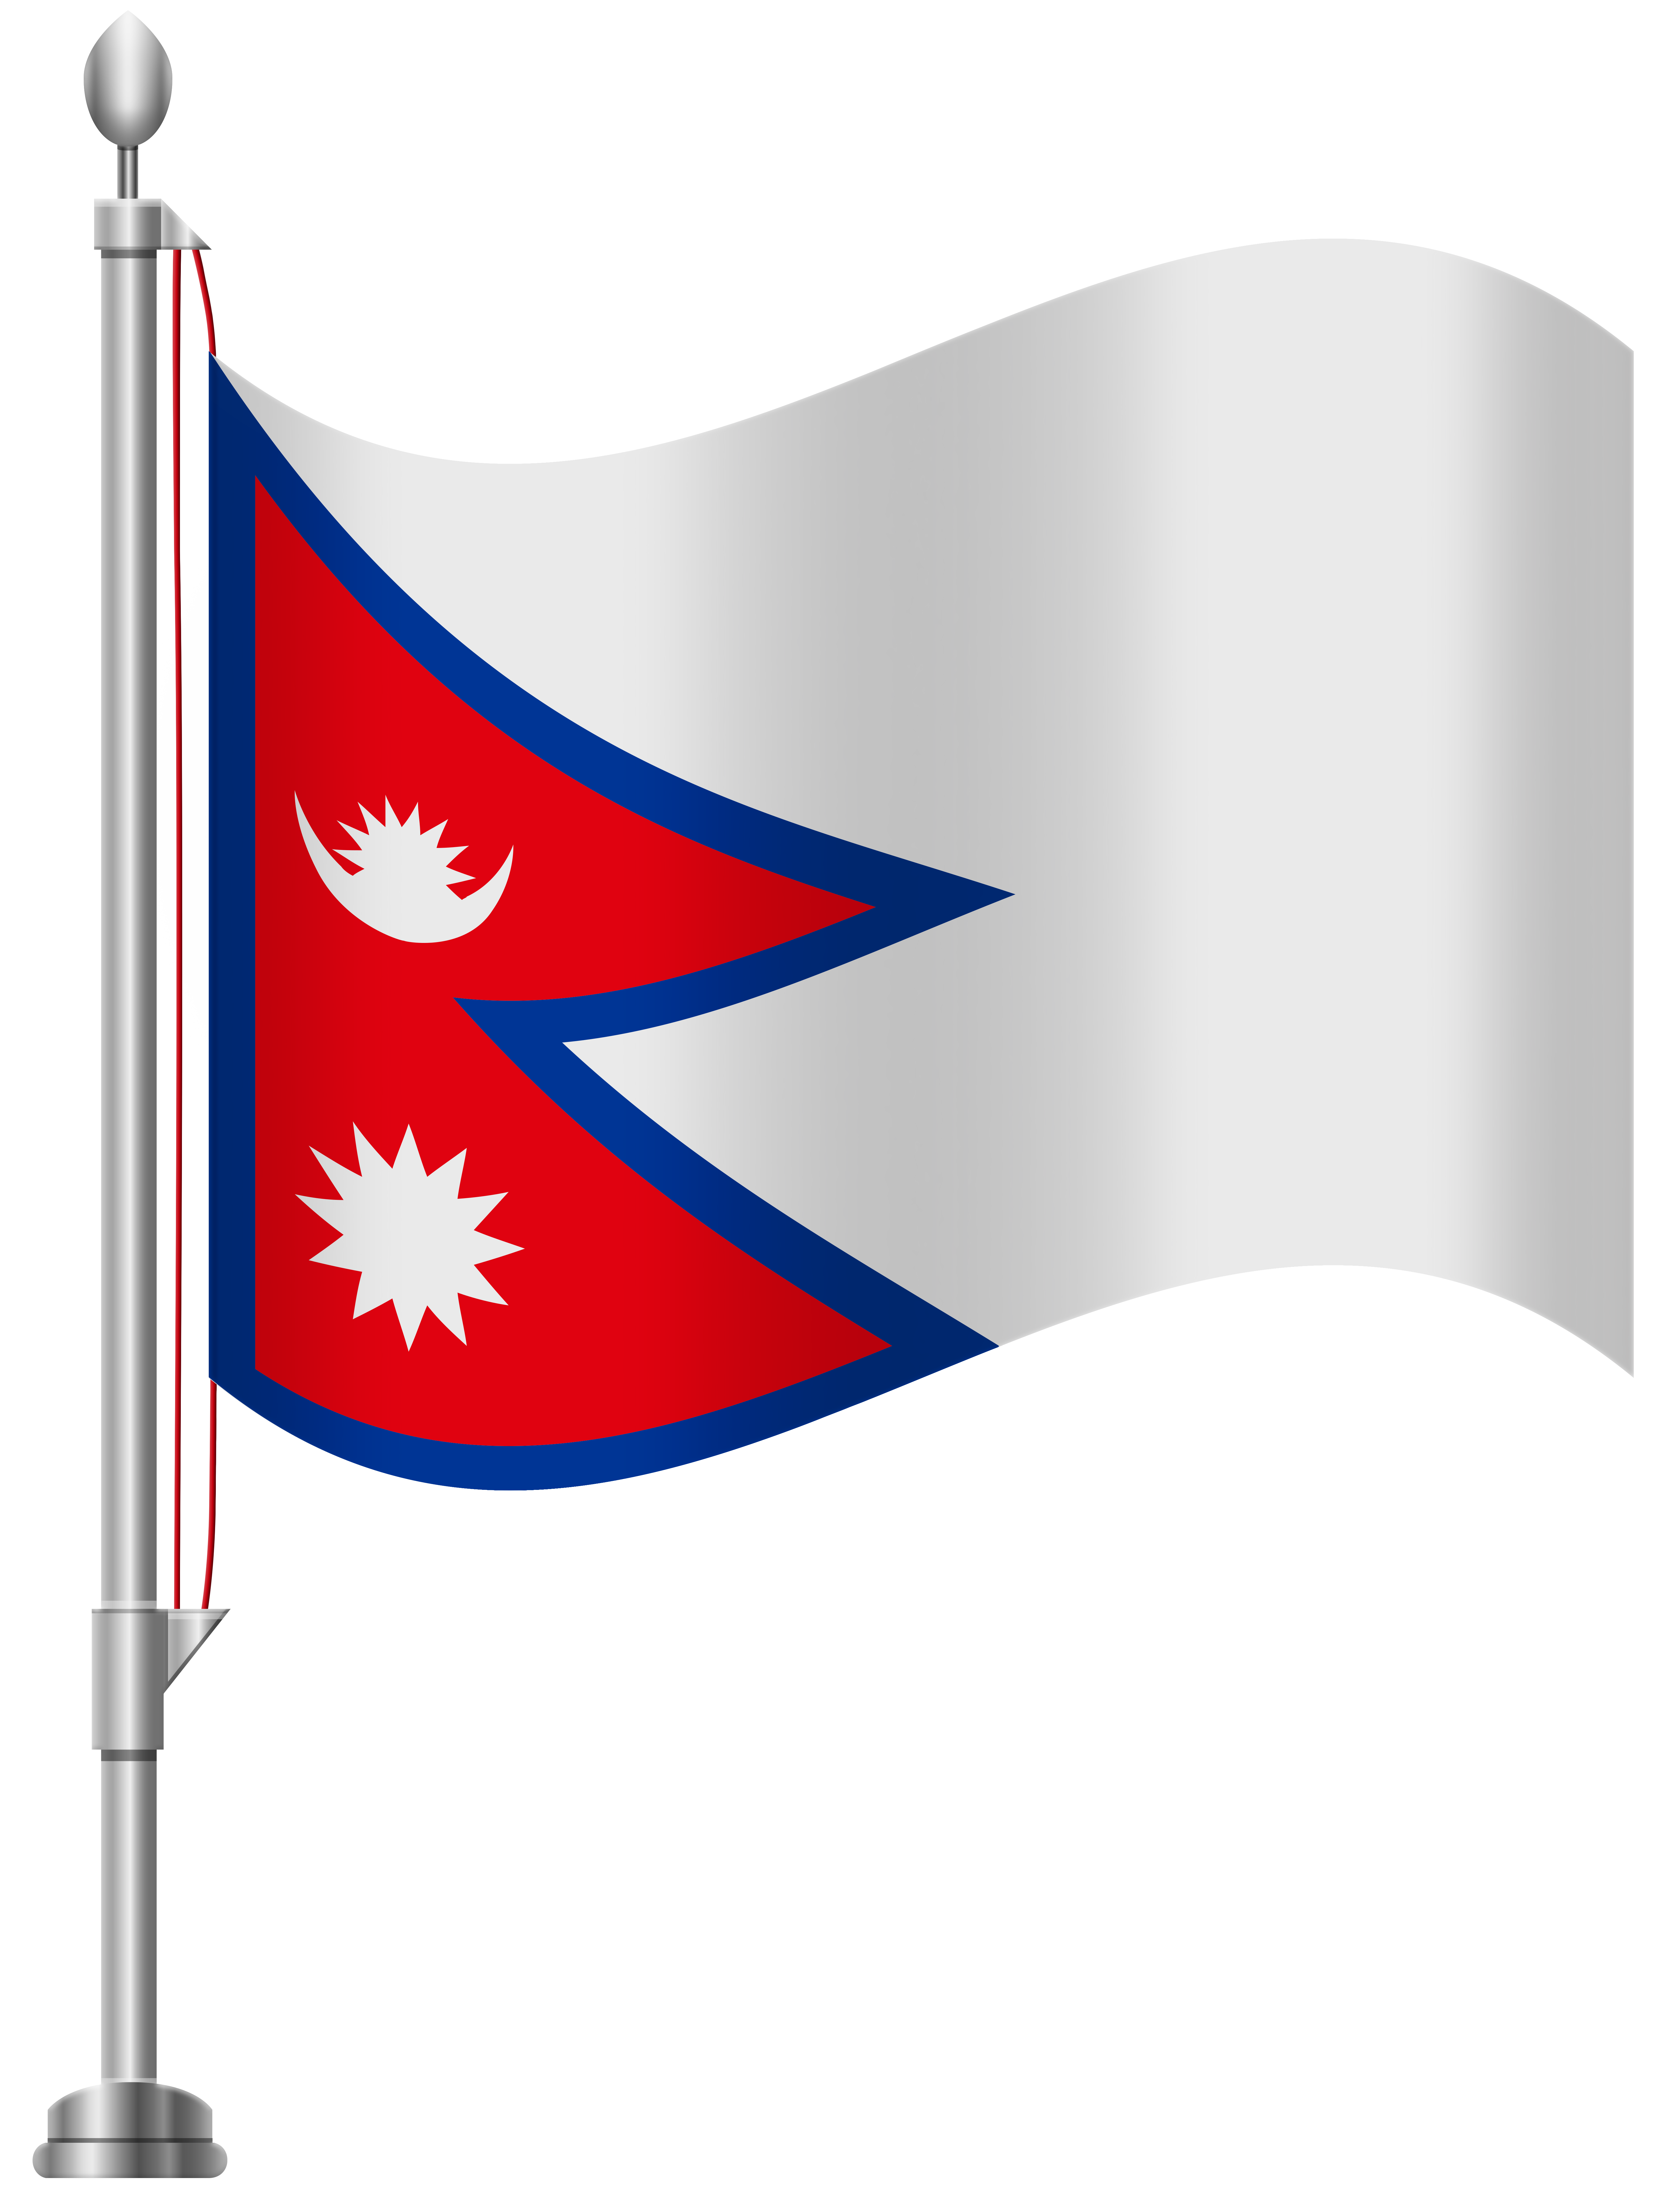 Nepal flag clipart free library Nepal Flag PNG Clip Art - Best WEB Clipart free library